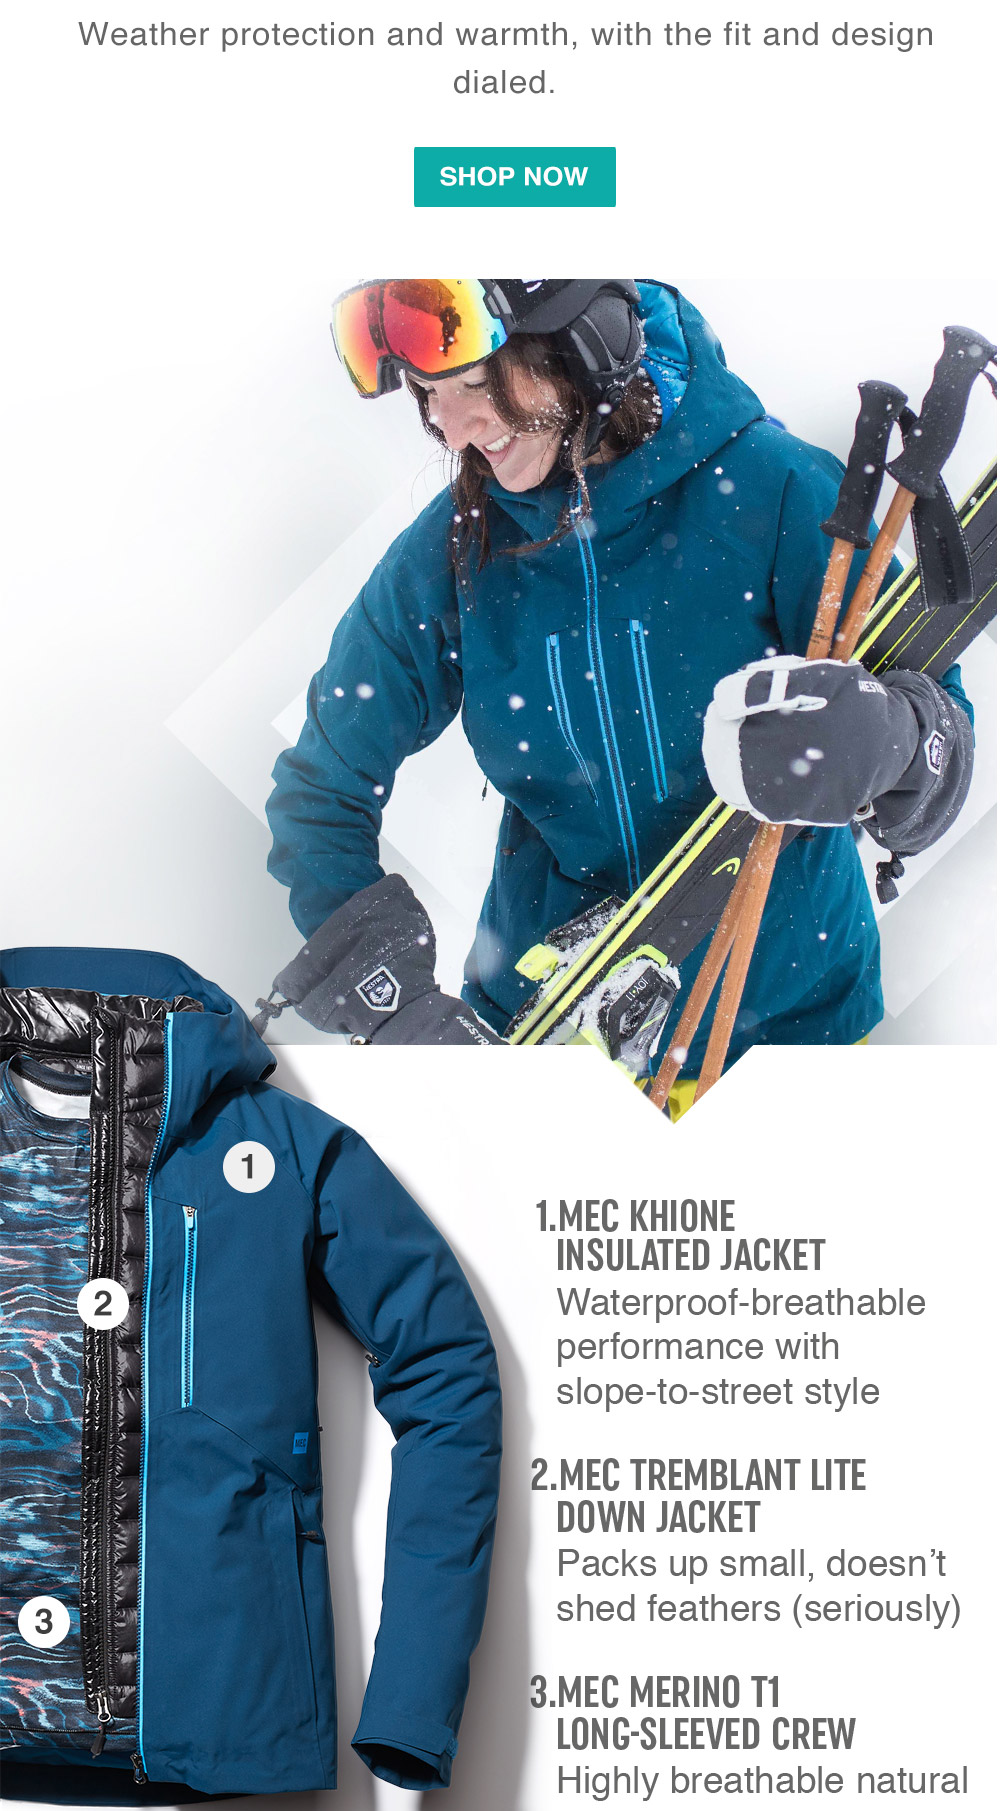 Mec outdoor promo photographer ski mountain equipment coop adventure photographer